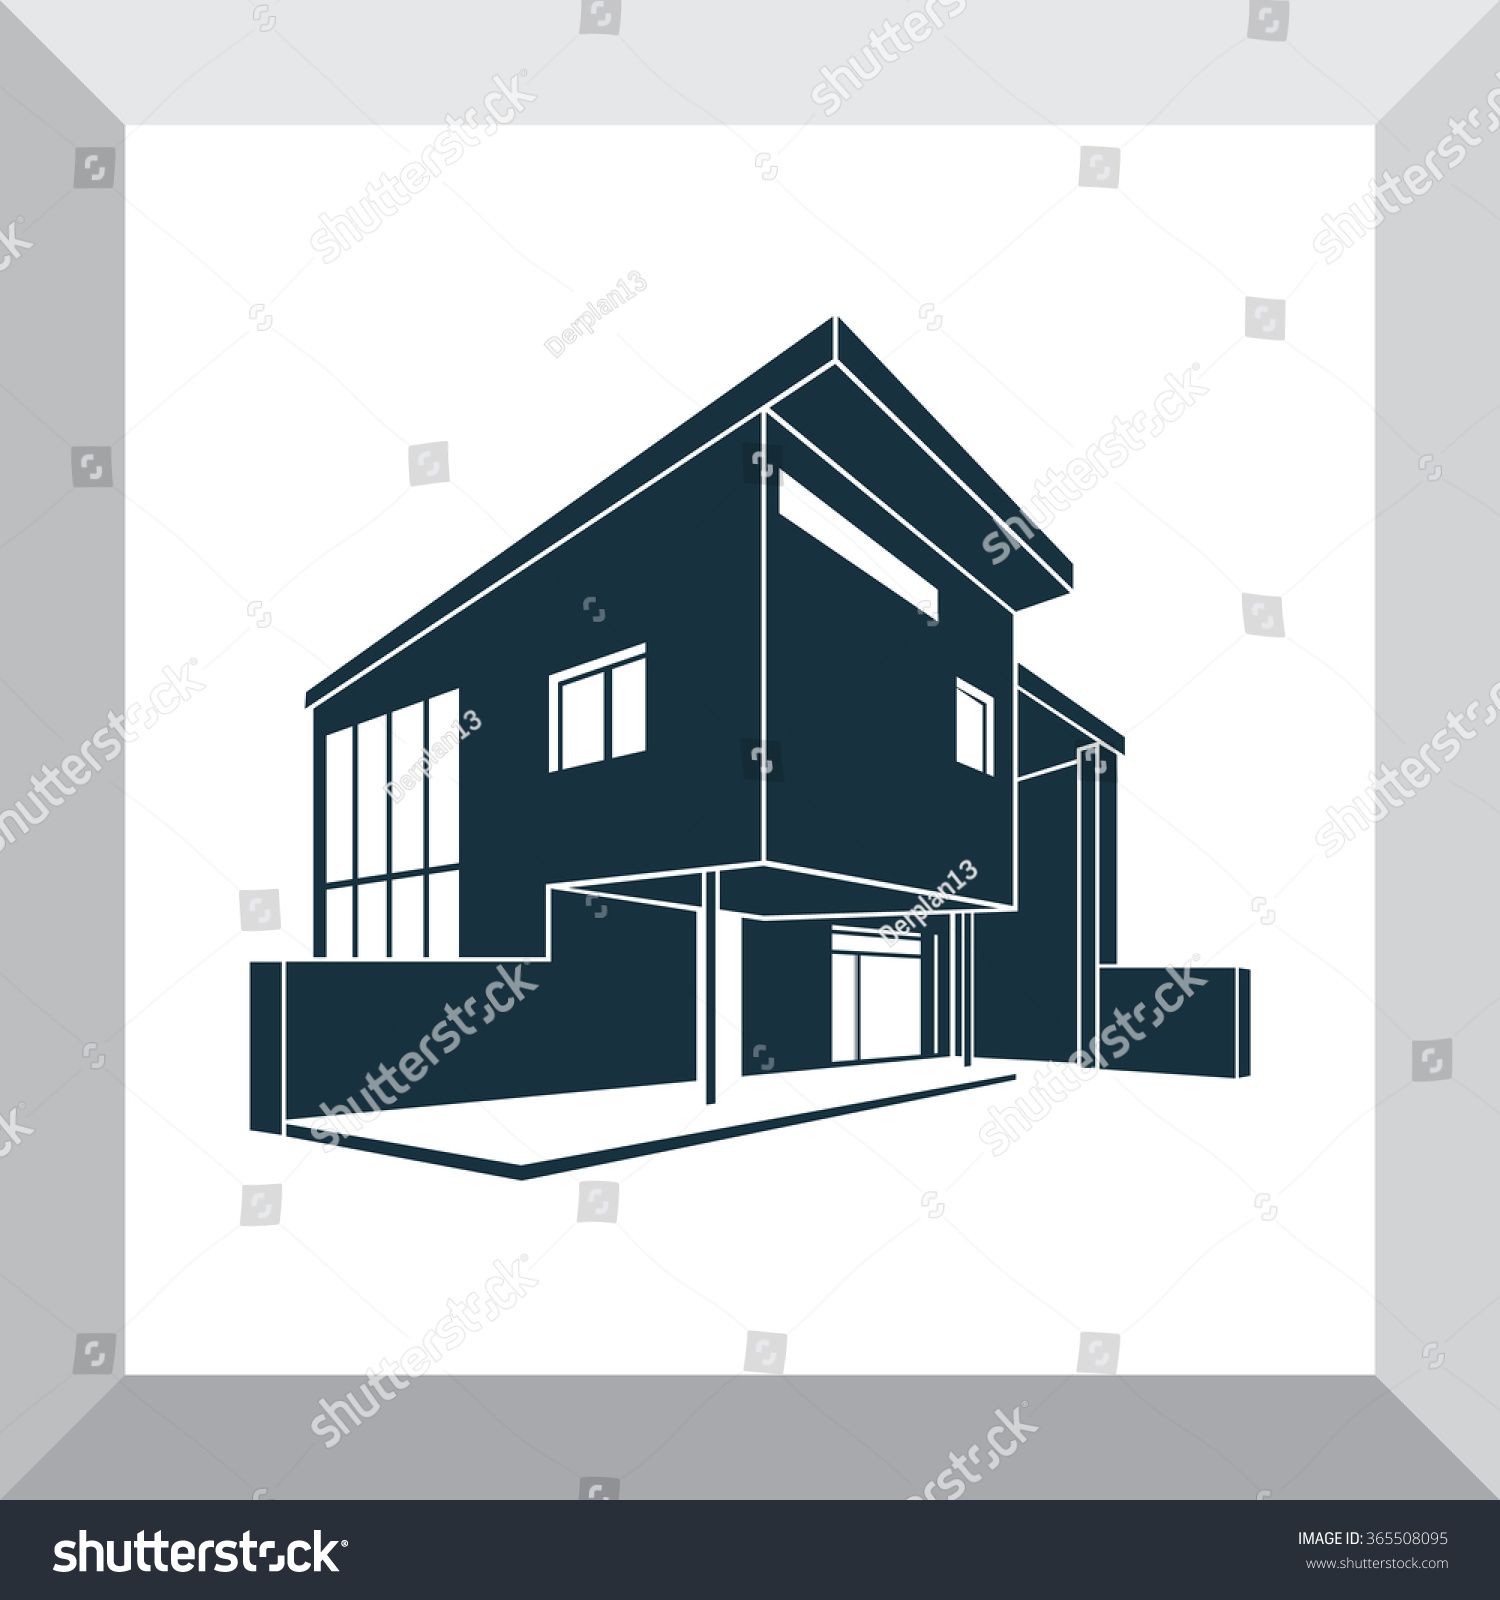 Vector image of a modern and trendy design of the private country house silhouette and